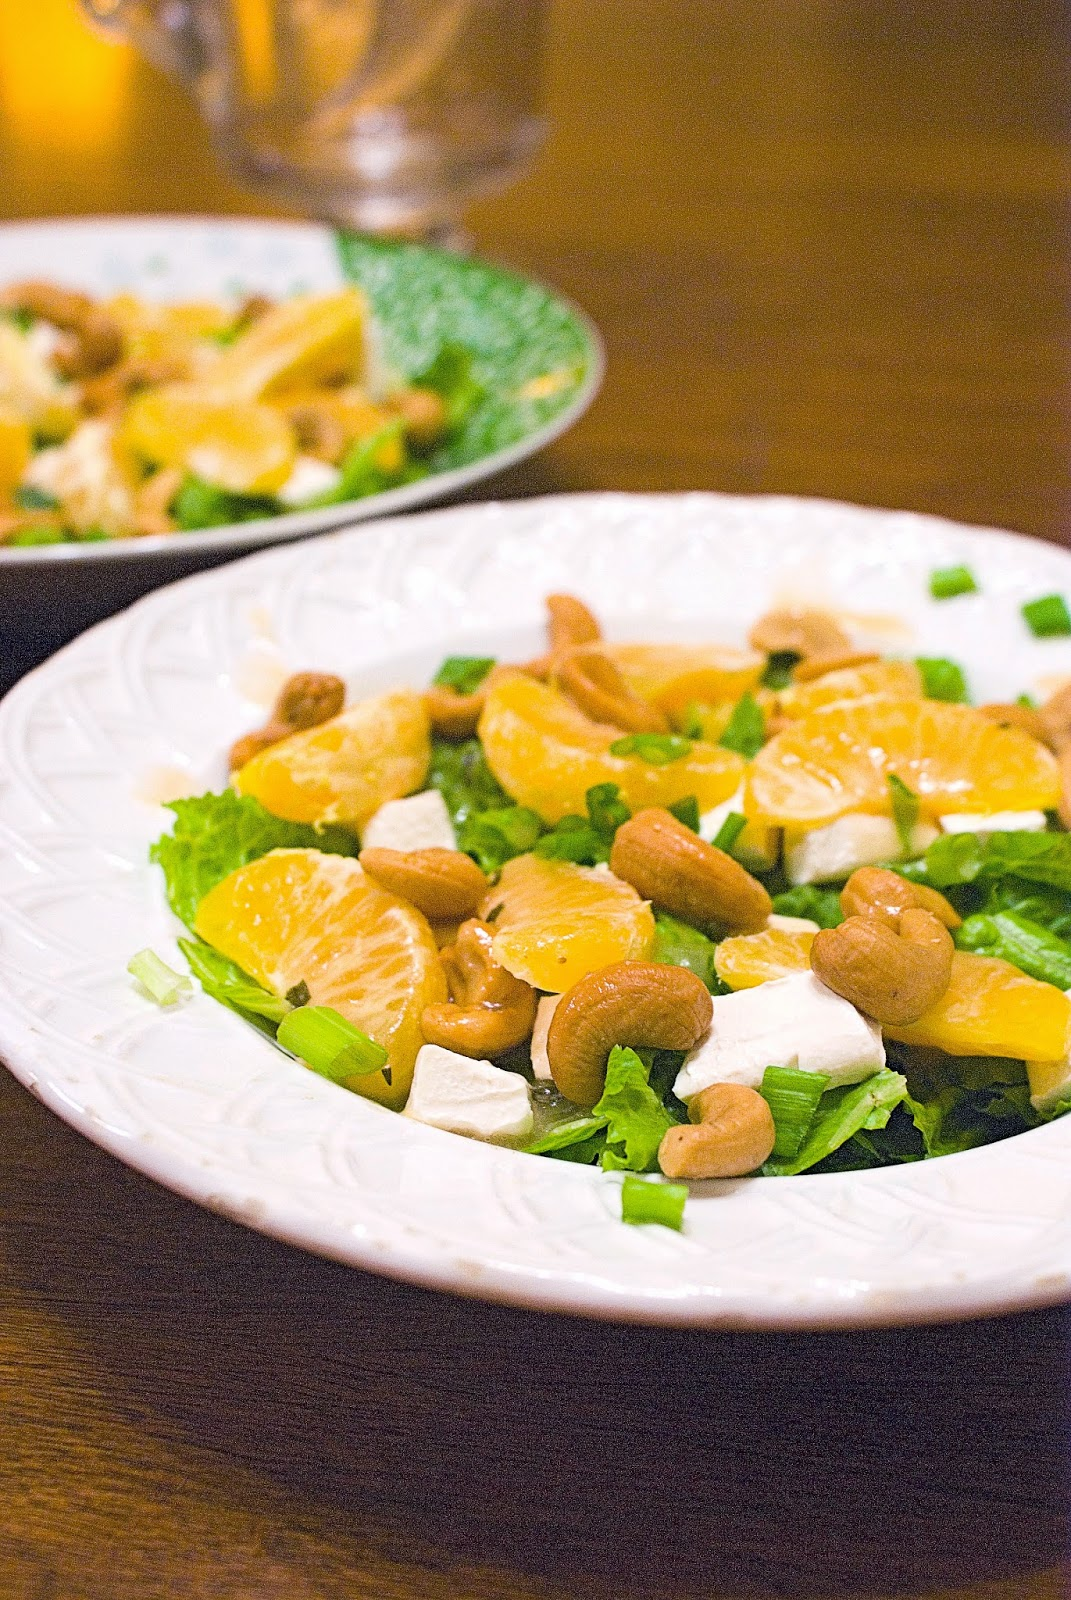 Cashew, Clementine, and Cream Cheese Salad